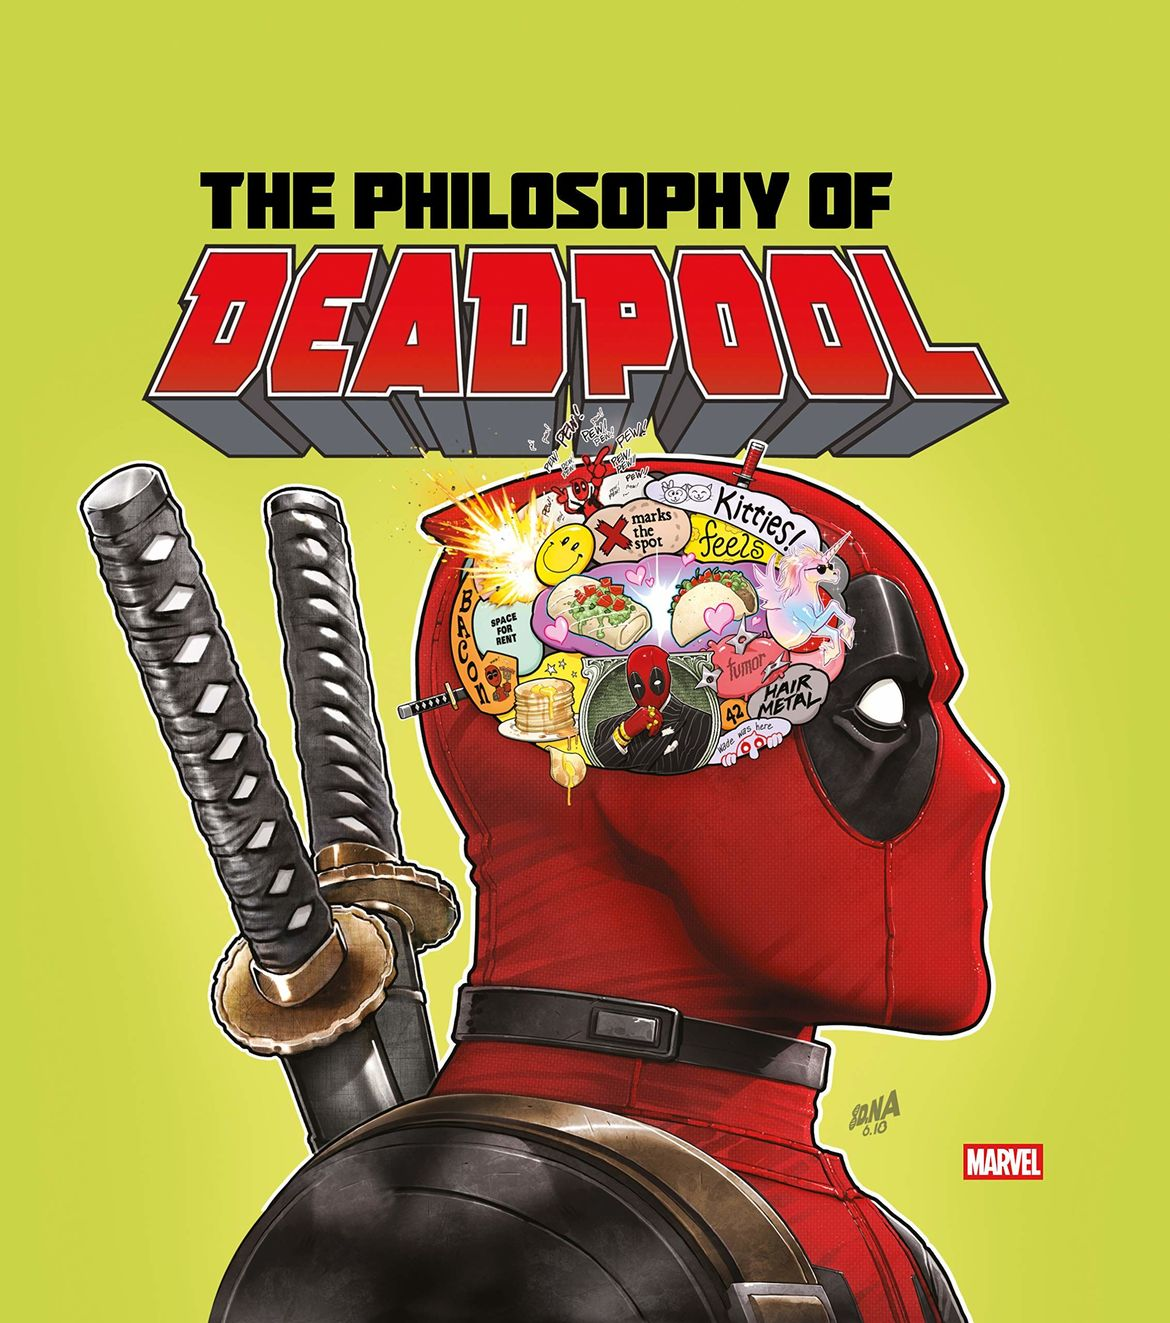 7 Muses Comics the philosophy of deadpool from titan comics: preview